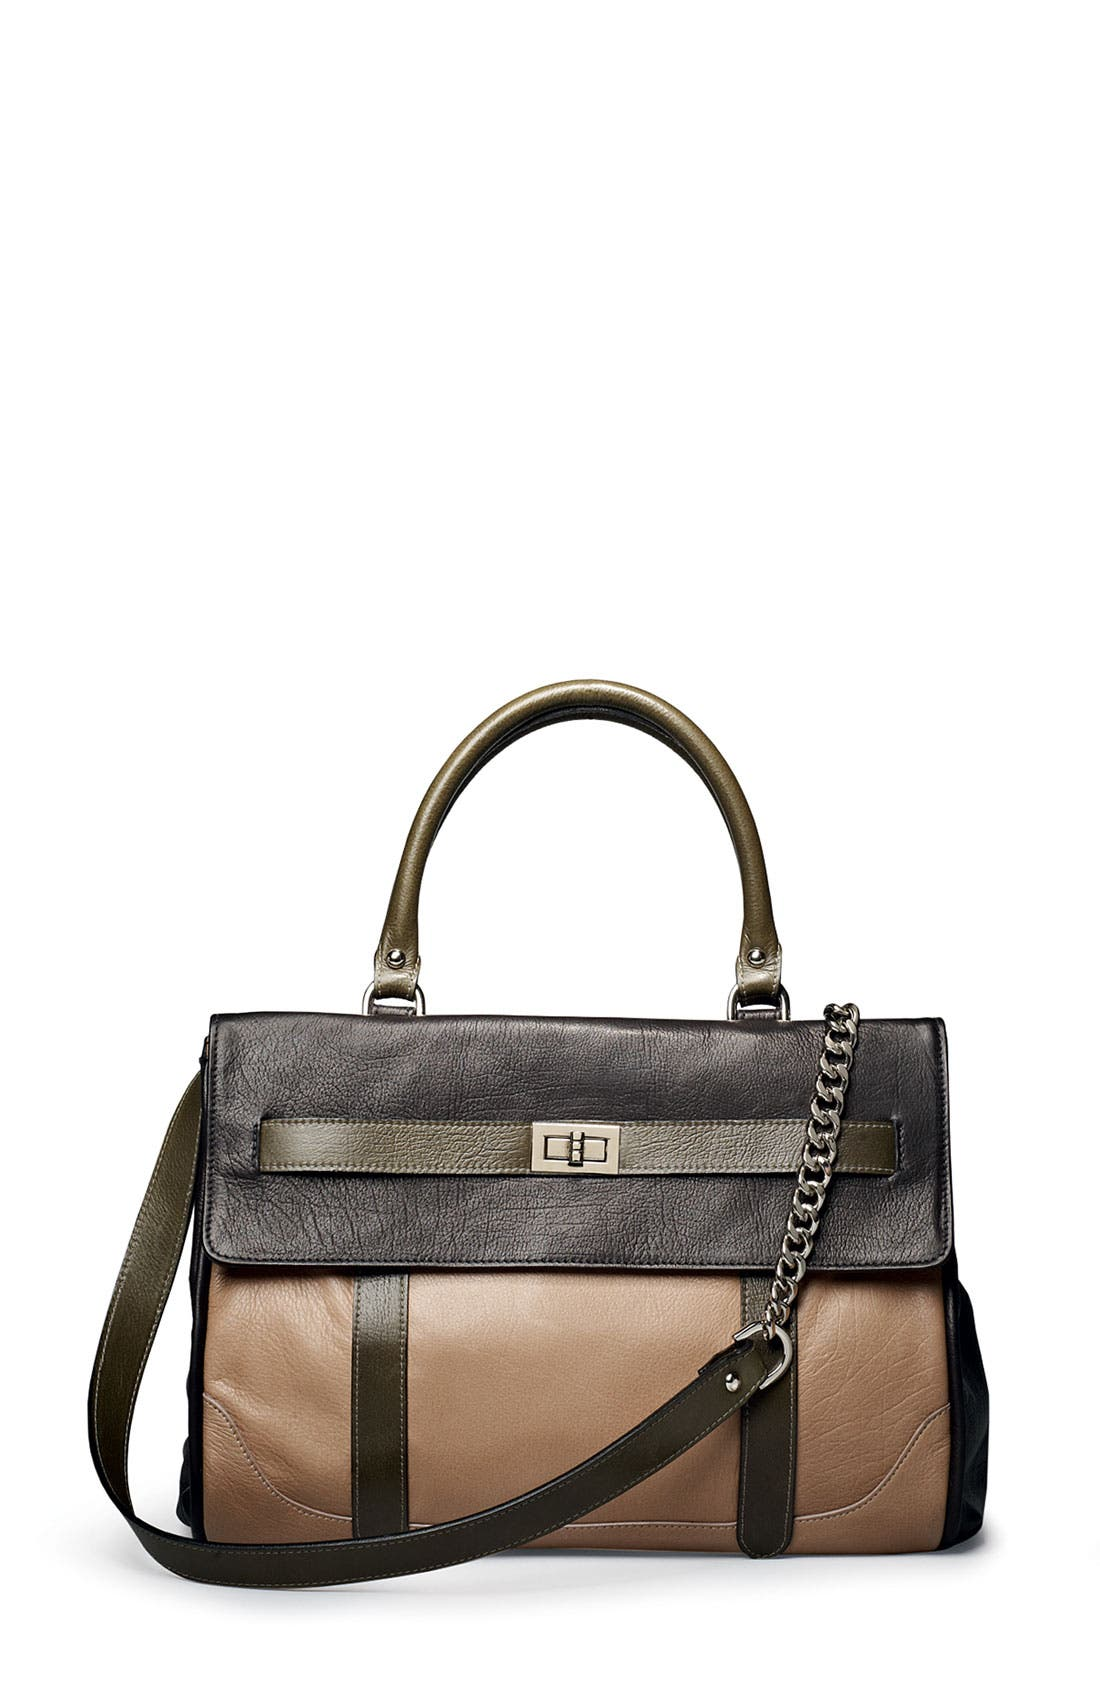 ROCCATELLA,                             'Jane' Belted Leather Satchel,                             Alternate thumbnail 2, color,                             001